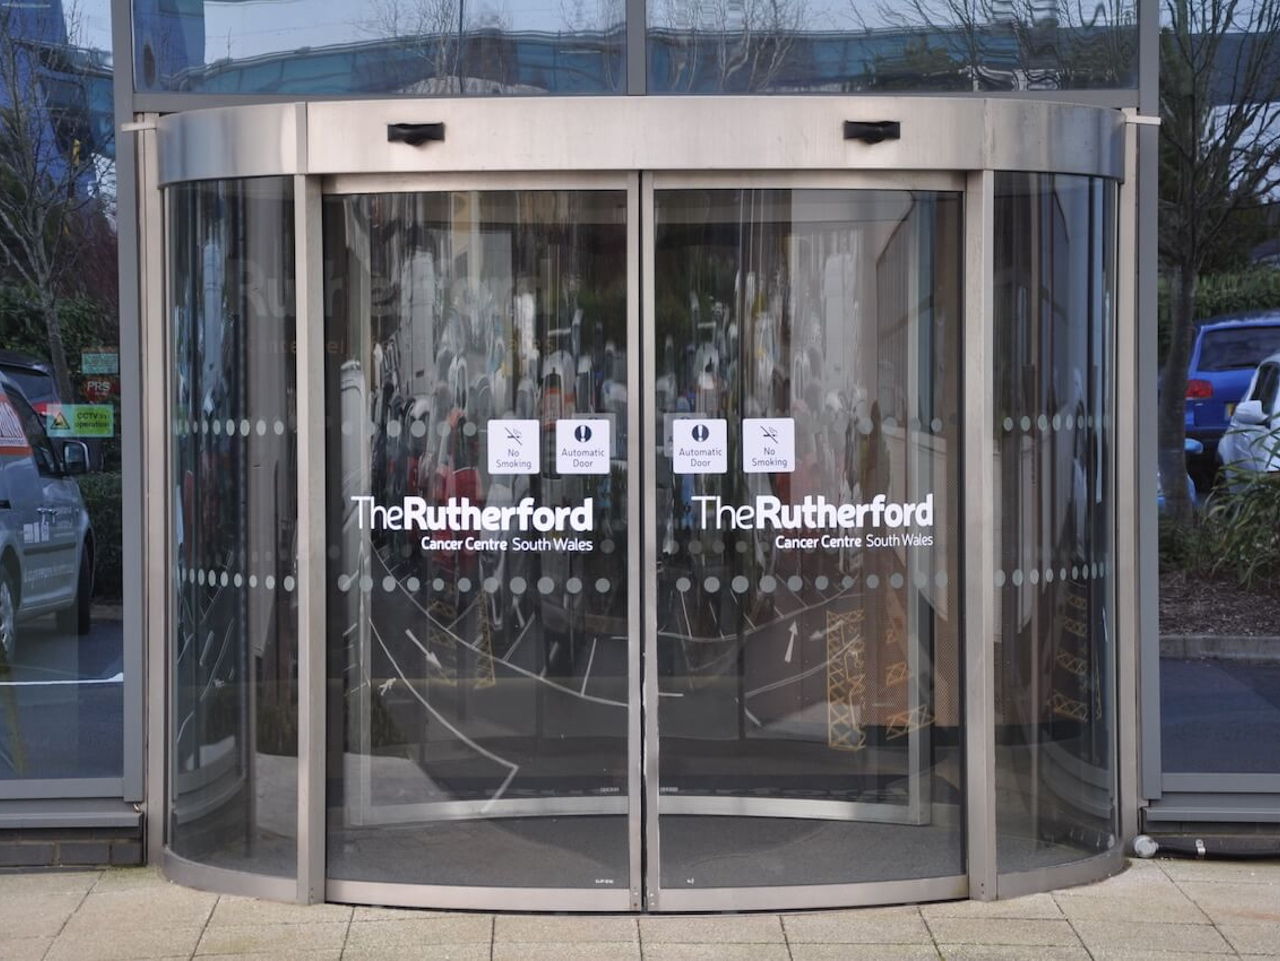 External door signage on automatic doors